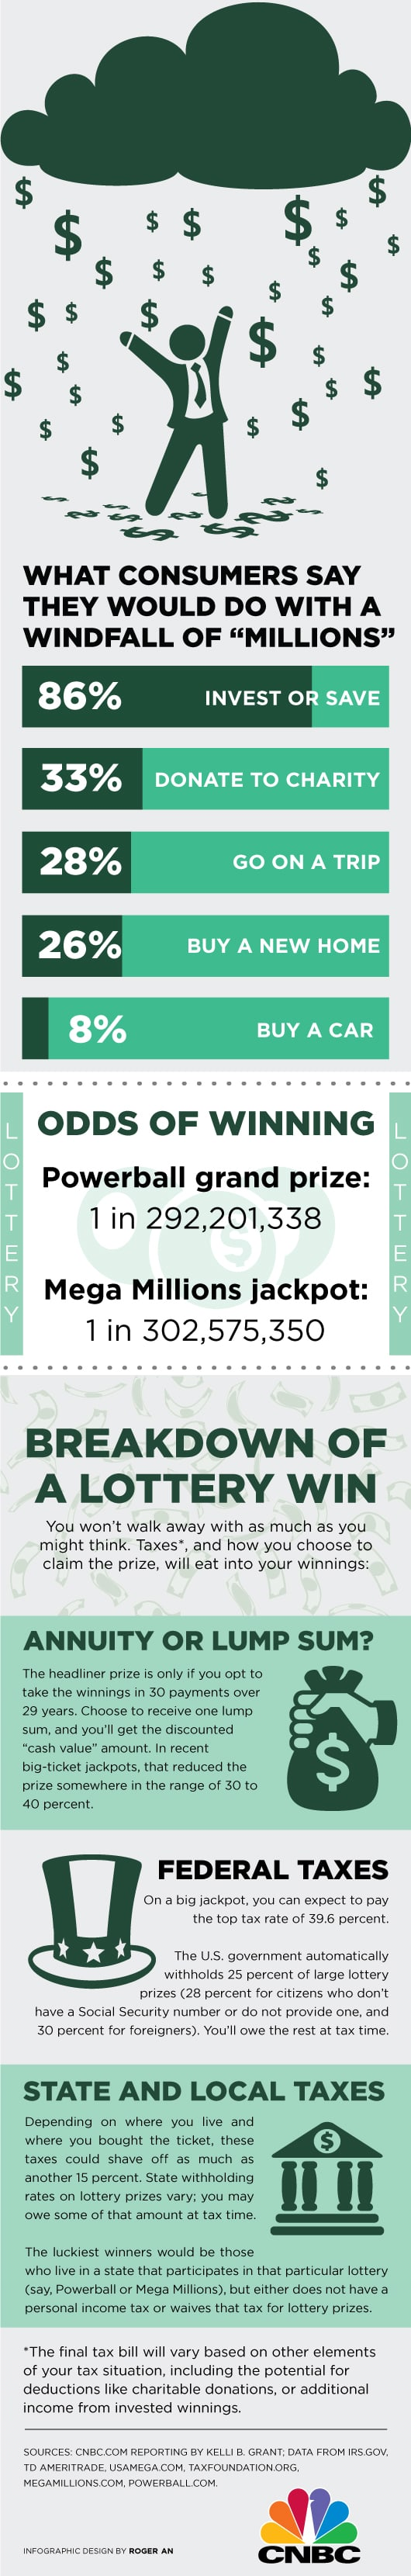 Here's how investors would spend a multimillion-dollar lottery win